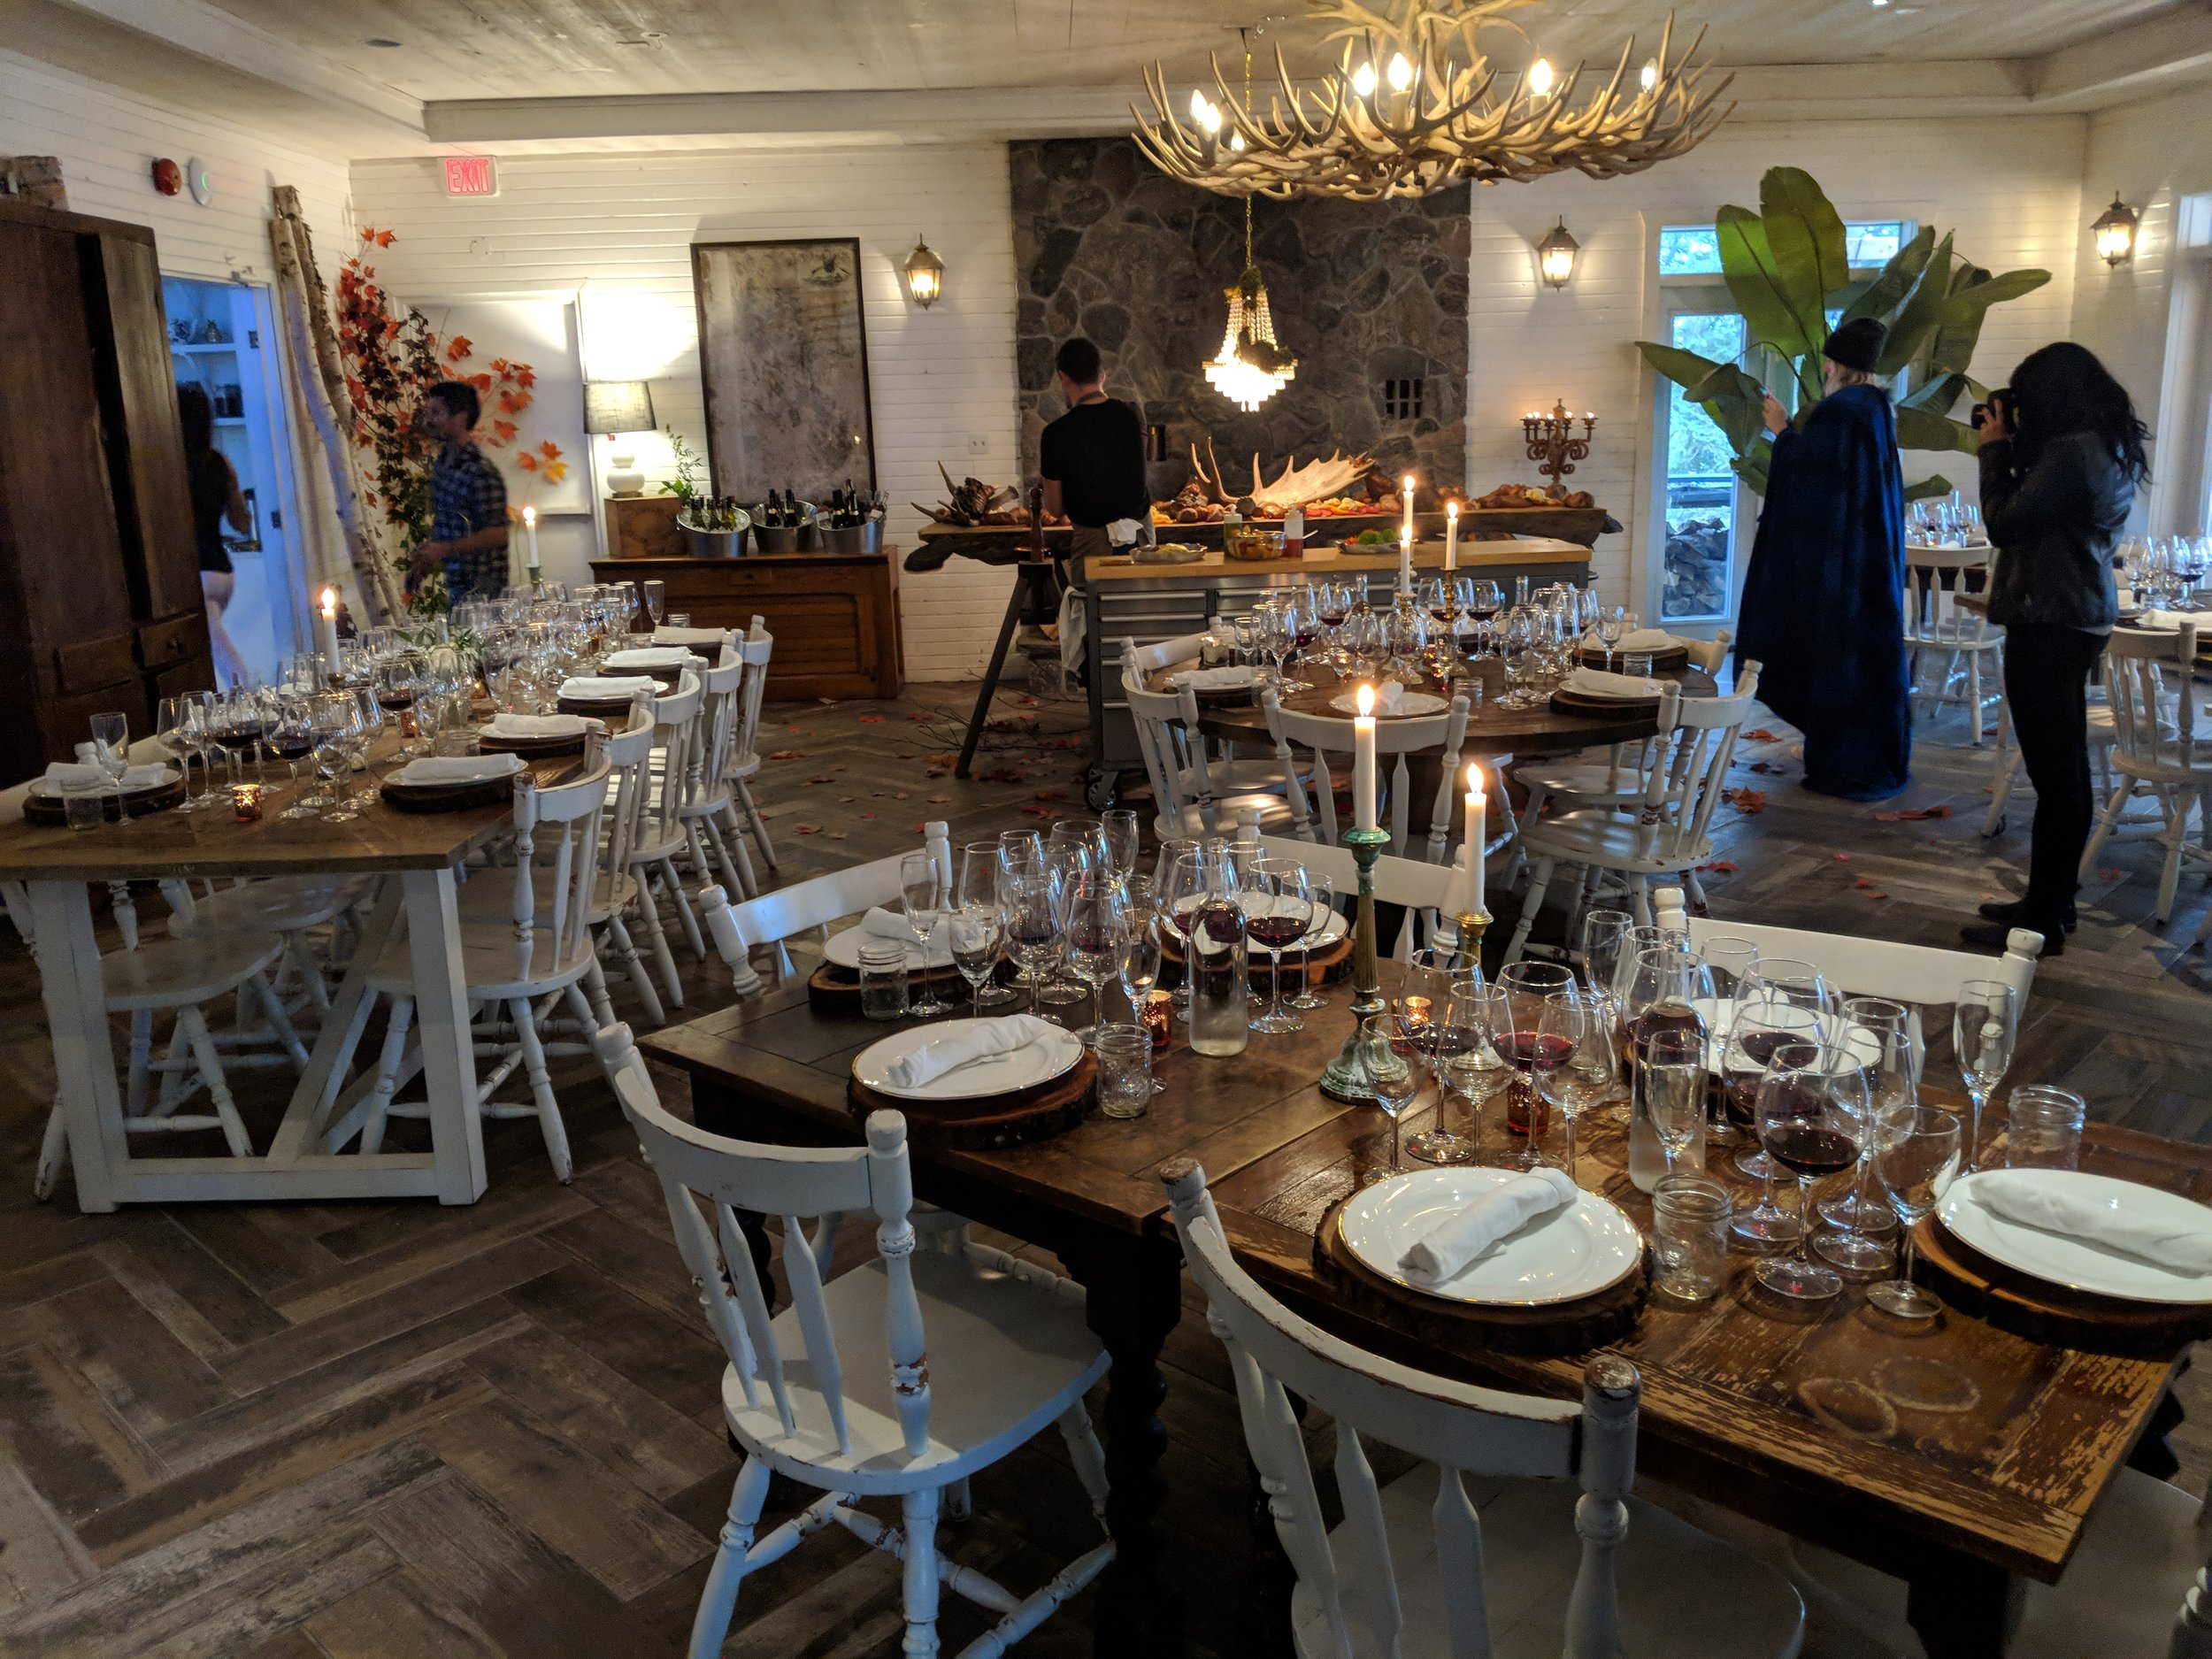 Indoor Dining Room Setup for Wine Tasting and Dinner